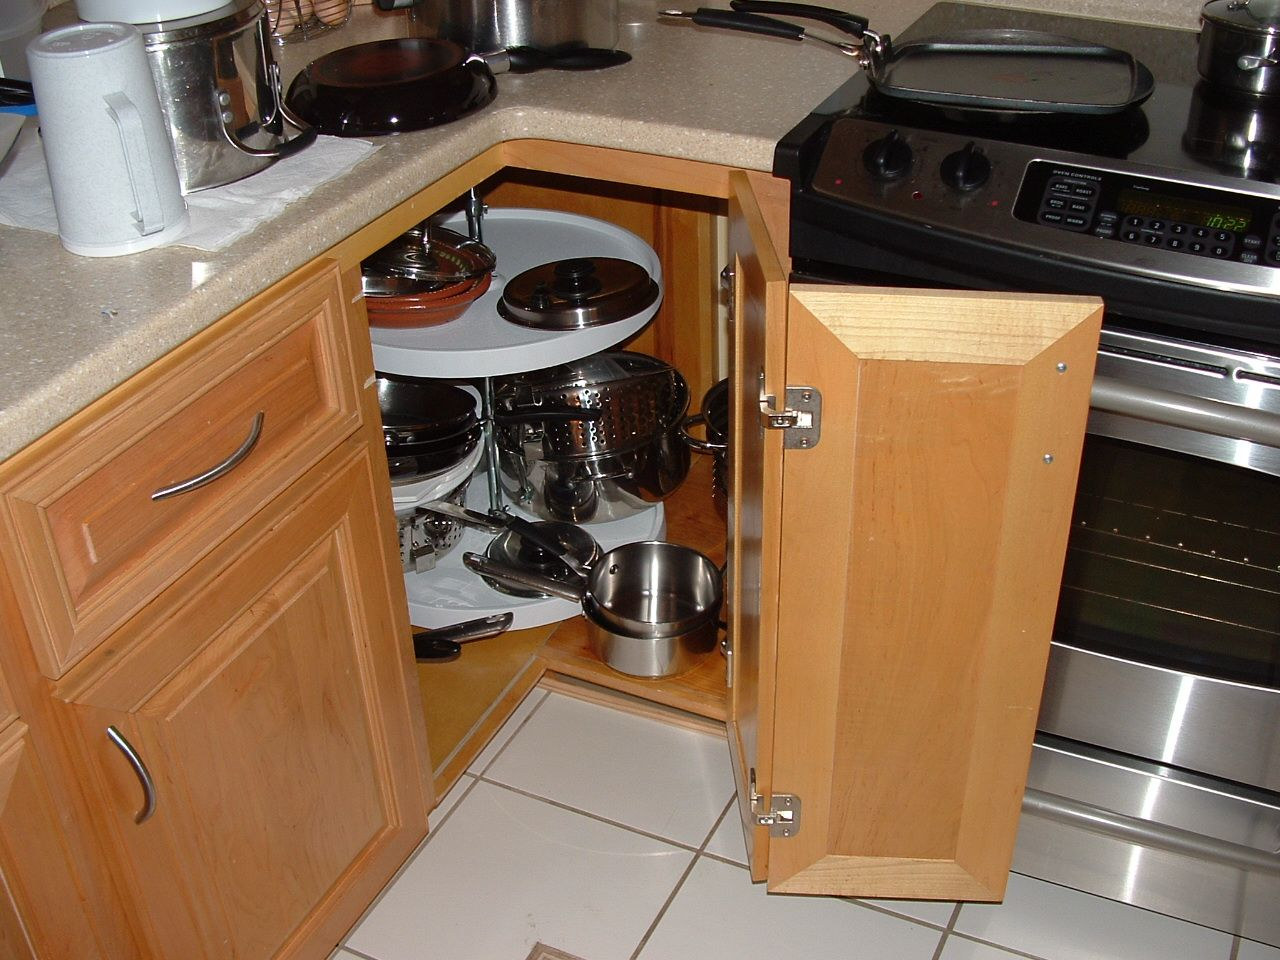 Kitchen Cabinets Lazy Susan Kitchen Cabinets Lazy Susan For The Inside Corners Of Your